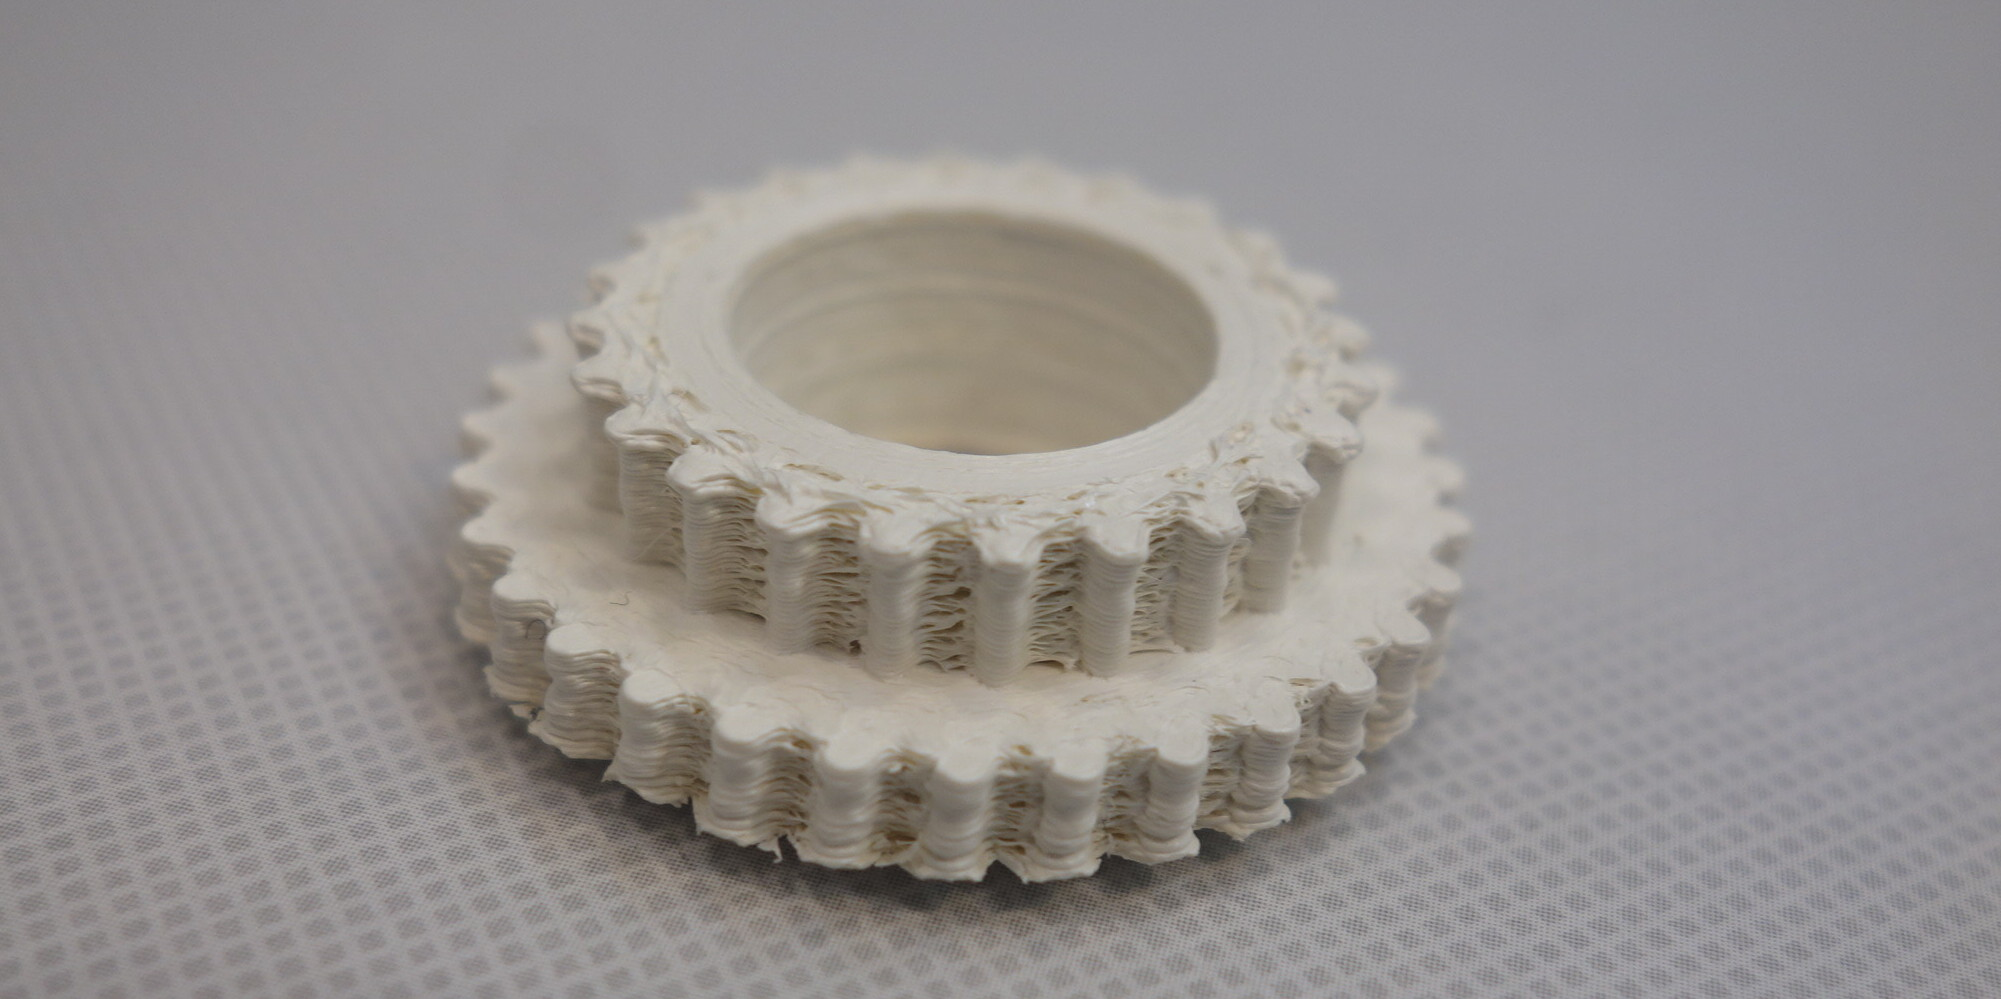 Otsuka Chemical Develops New FDM 3D Printer Resin, Sees Demand in Auto Parts, Robots